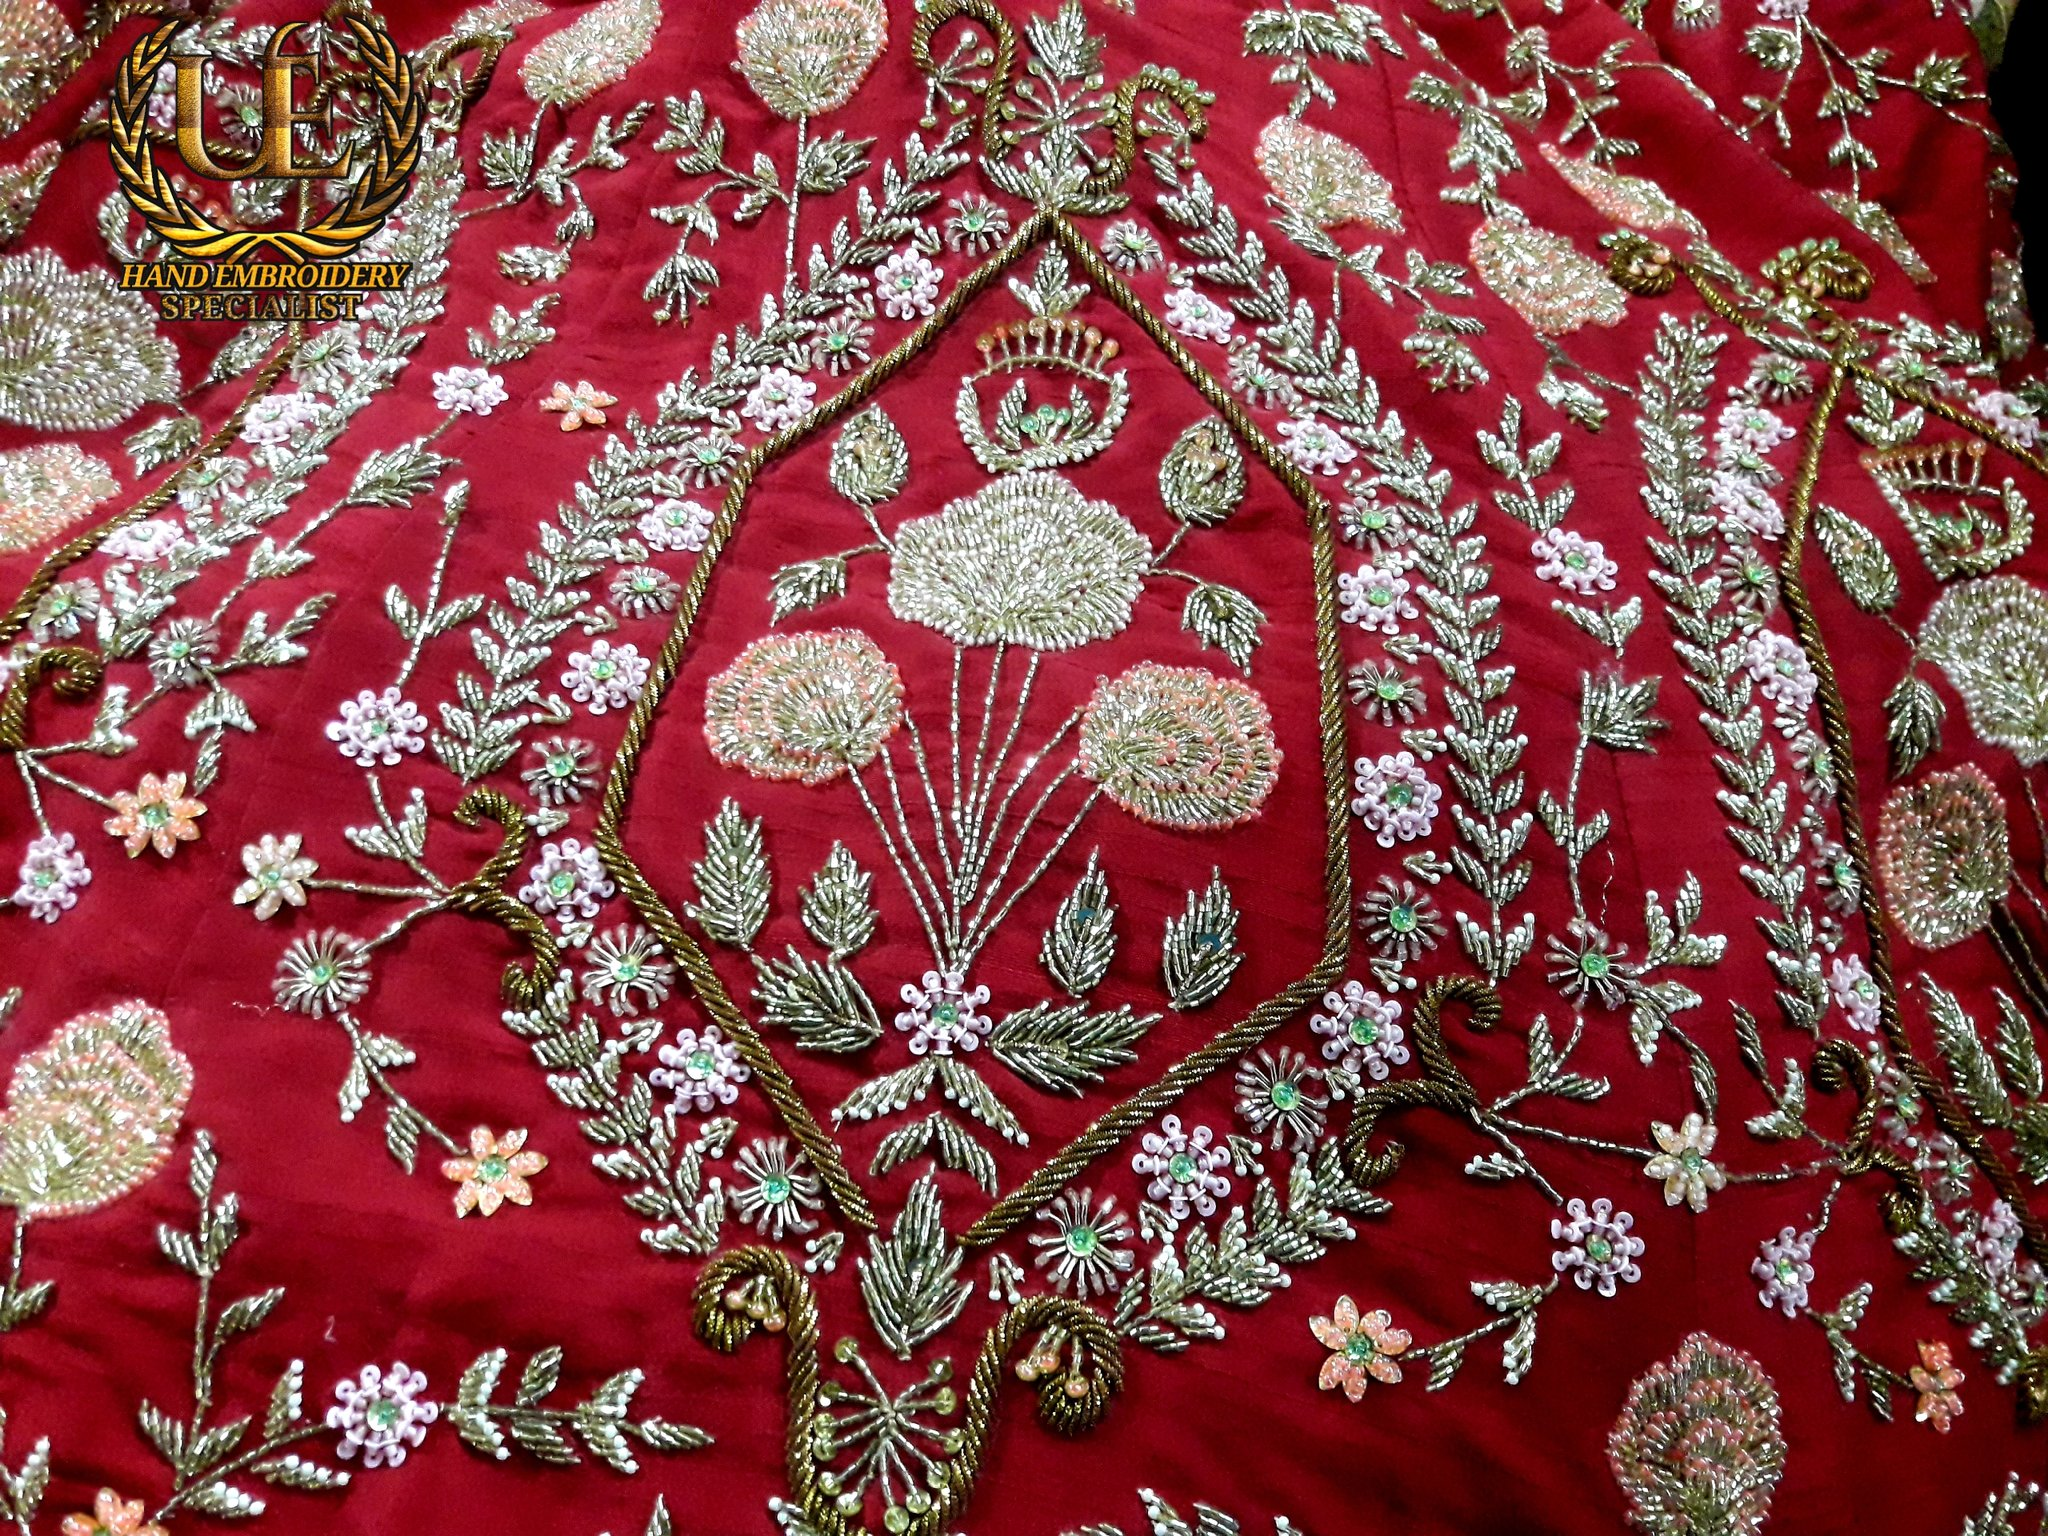 hand embroidery specialist on Twitter